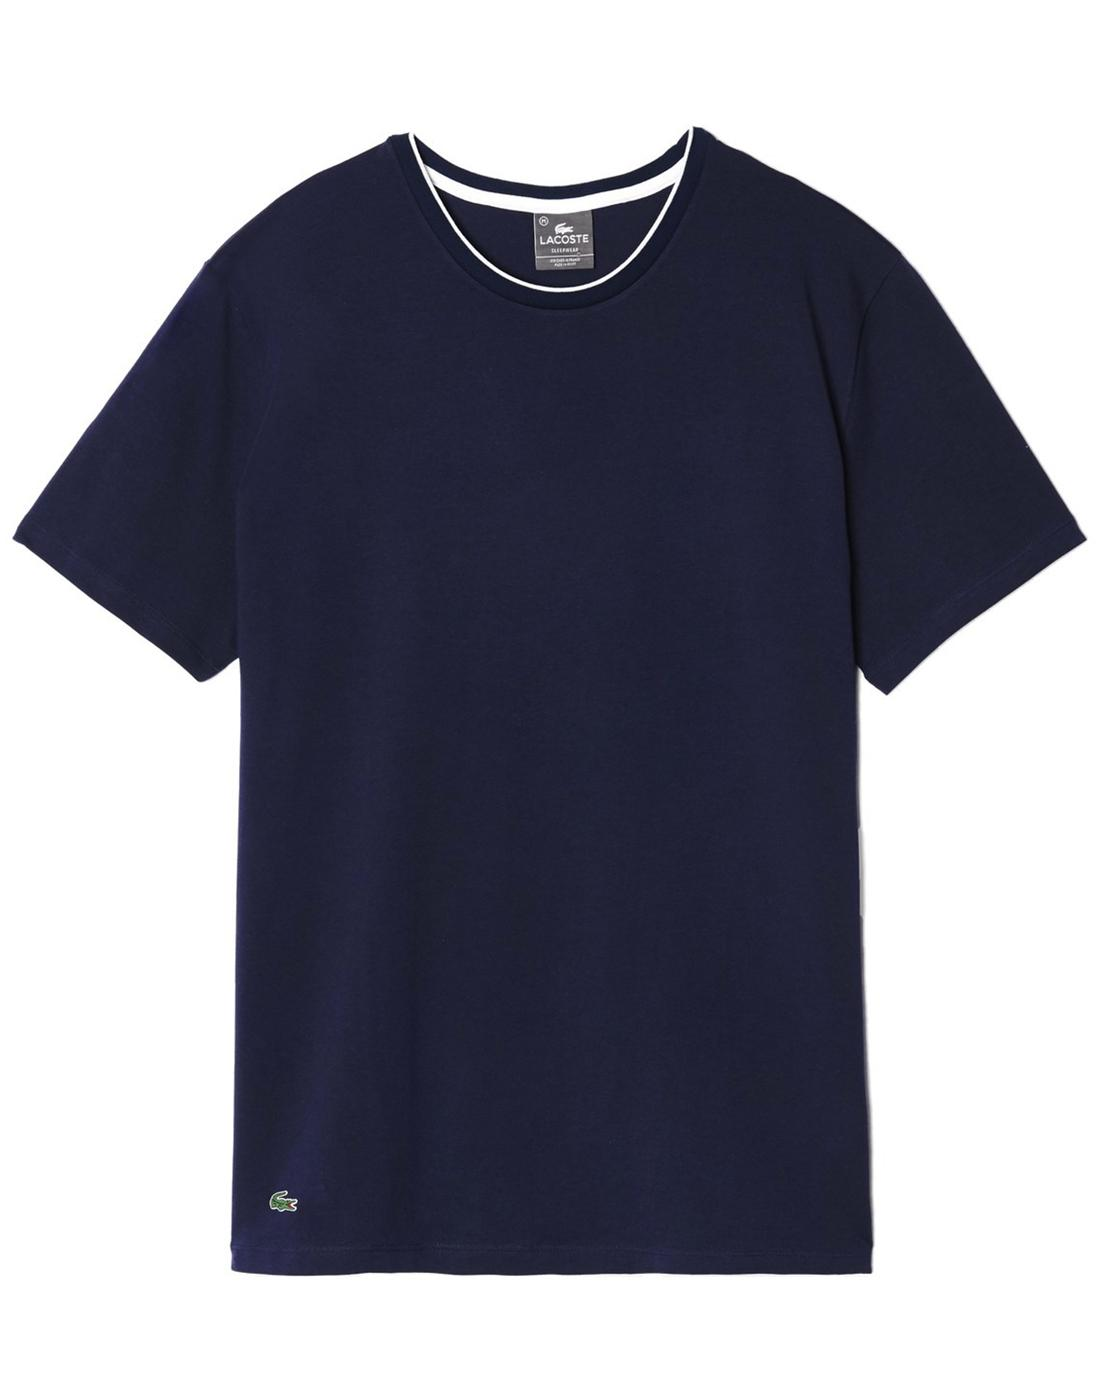 Baseline LACOSTE Mens Tipped Collar T-Shirt Blue